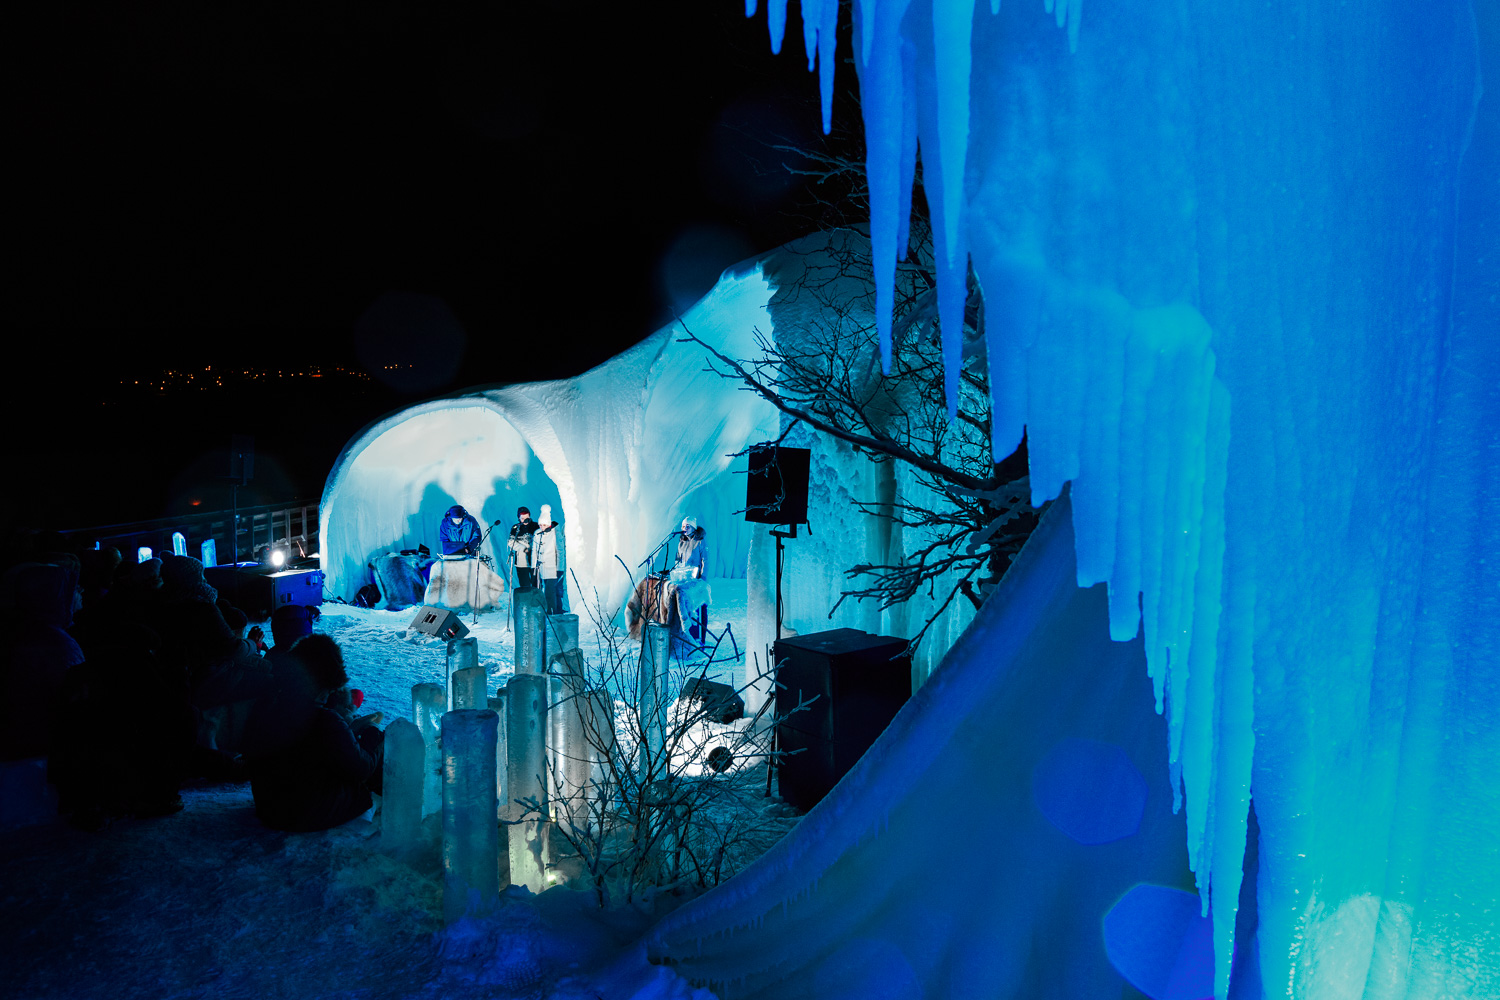 The University of Bergen's amazing ice stage for the Ice Music Festival 2016